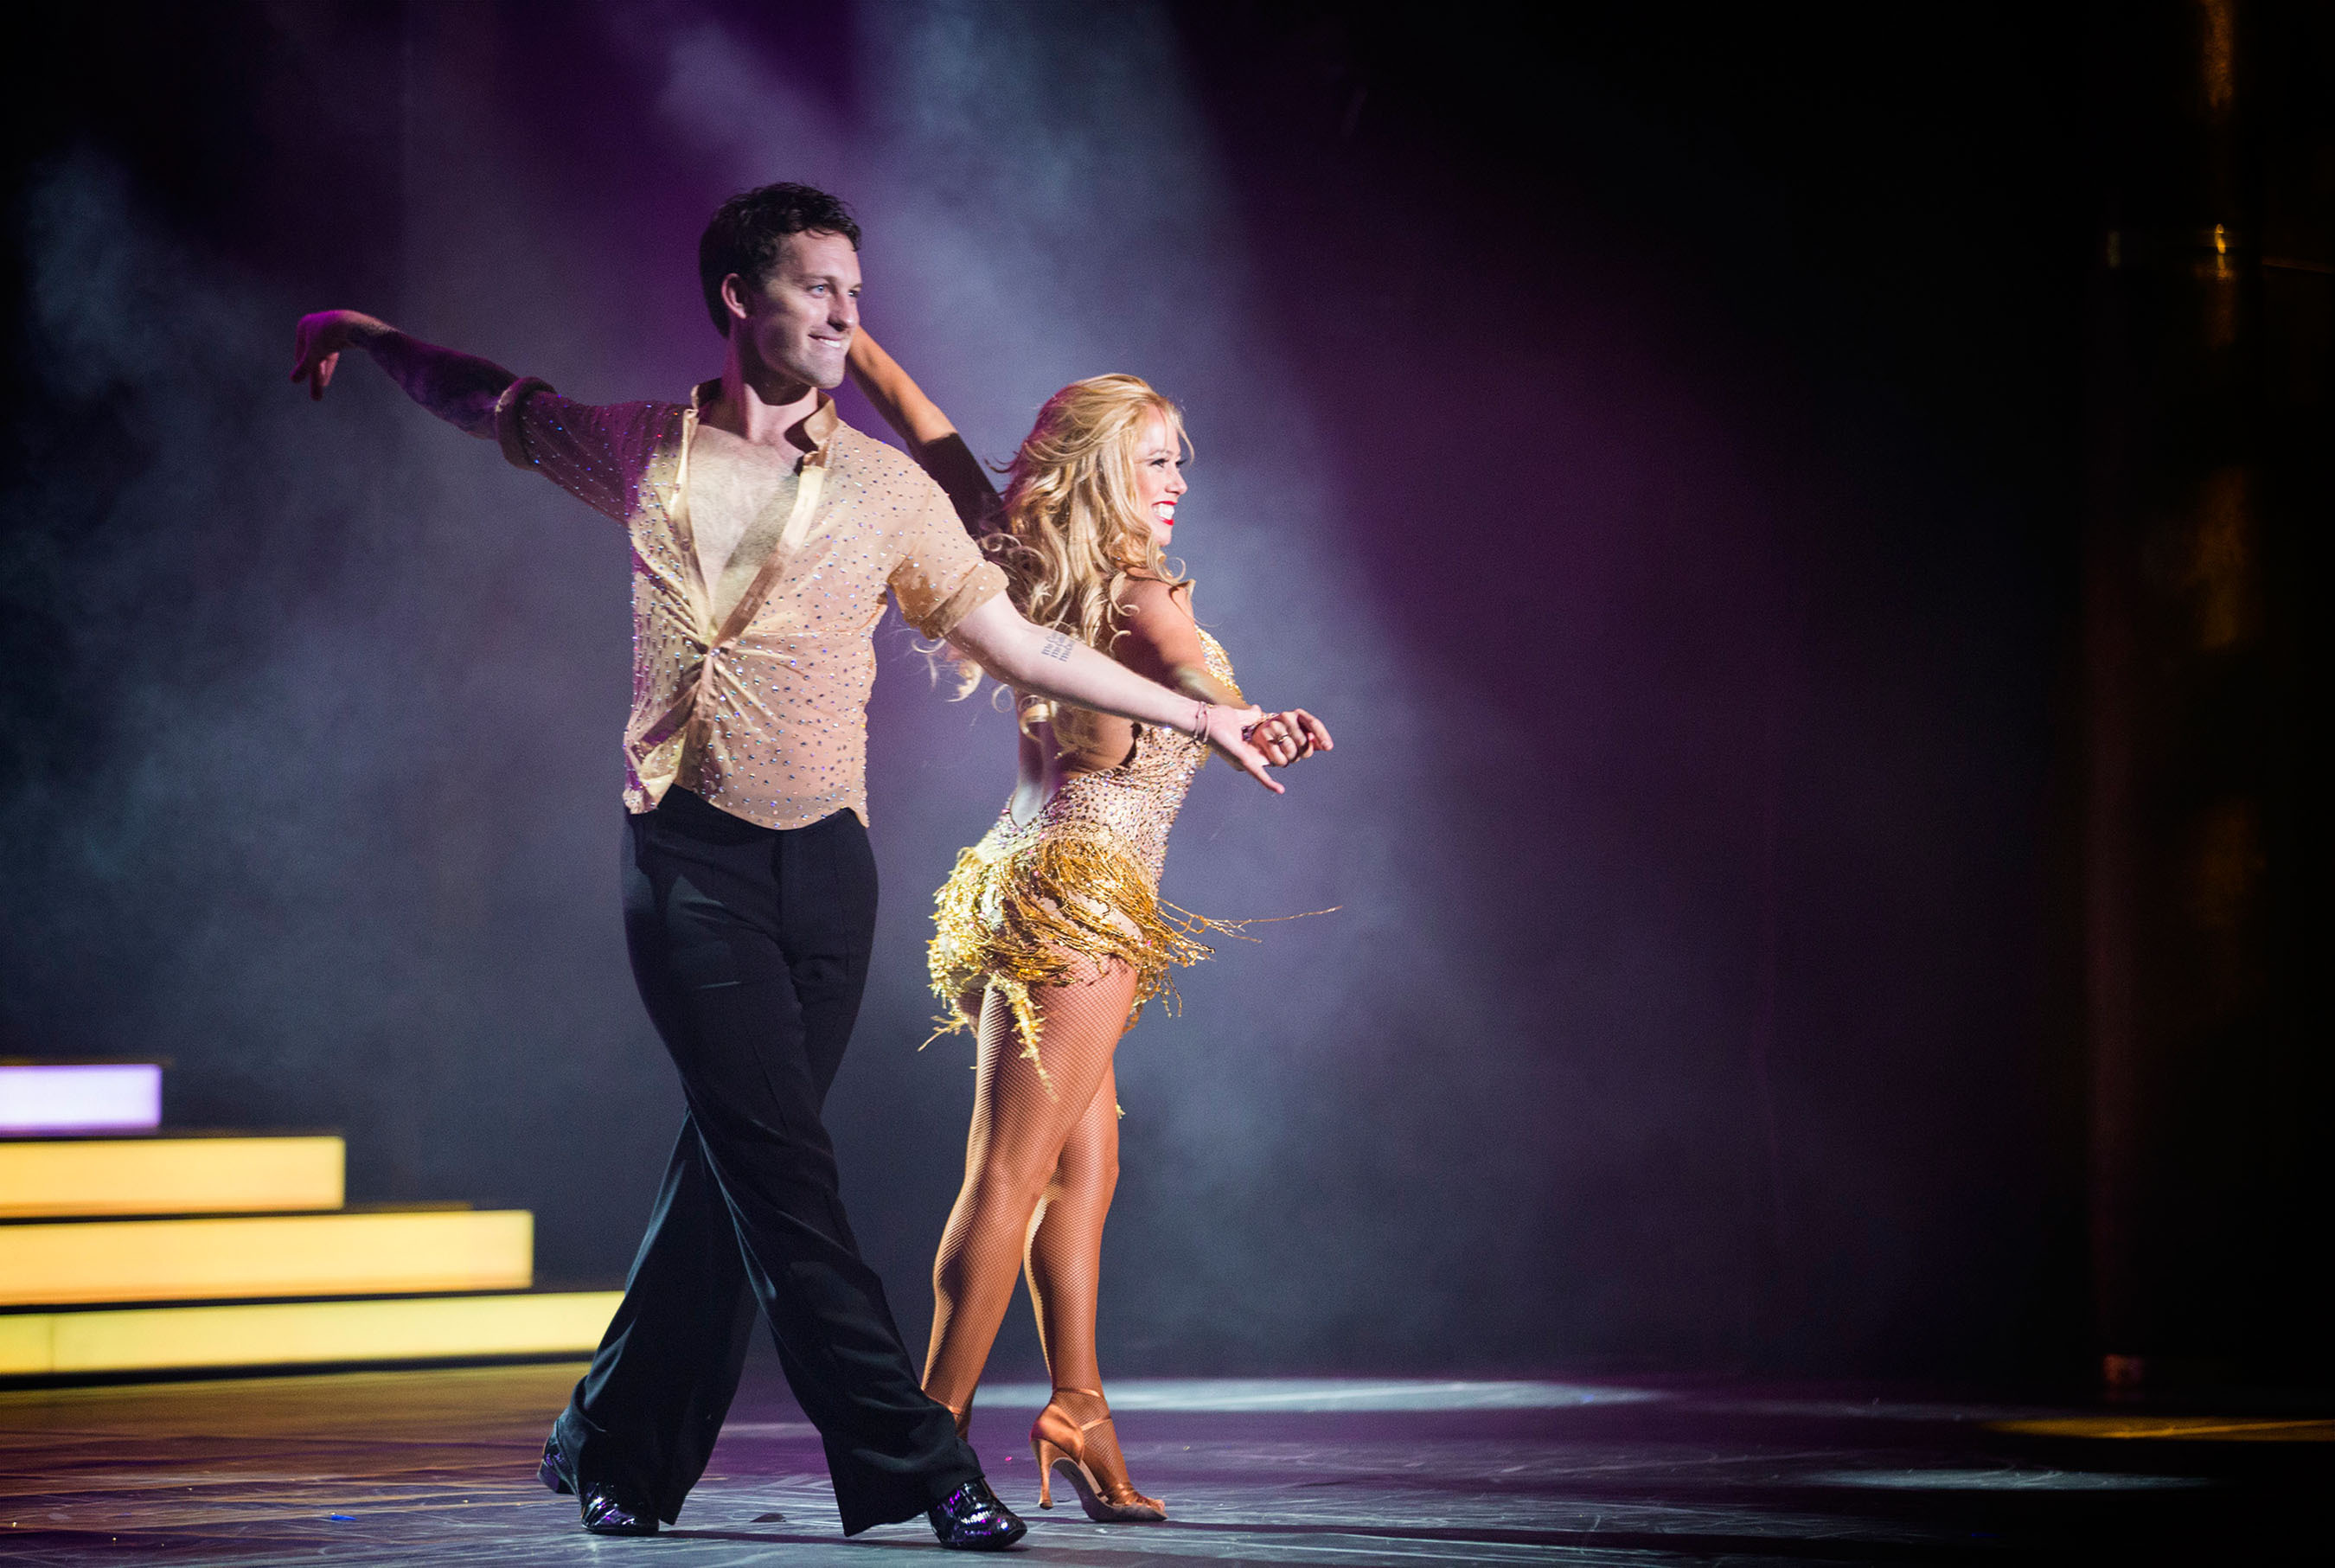 Holland America Line Adds Pro Dancers Kym Johnson, Tristan MacManus And Celebrity Sabrina Bryan To 'Dancing With The Stars: At Sea' Theme Cruises In The Caribbean Janua